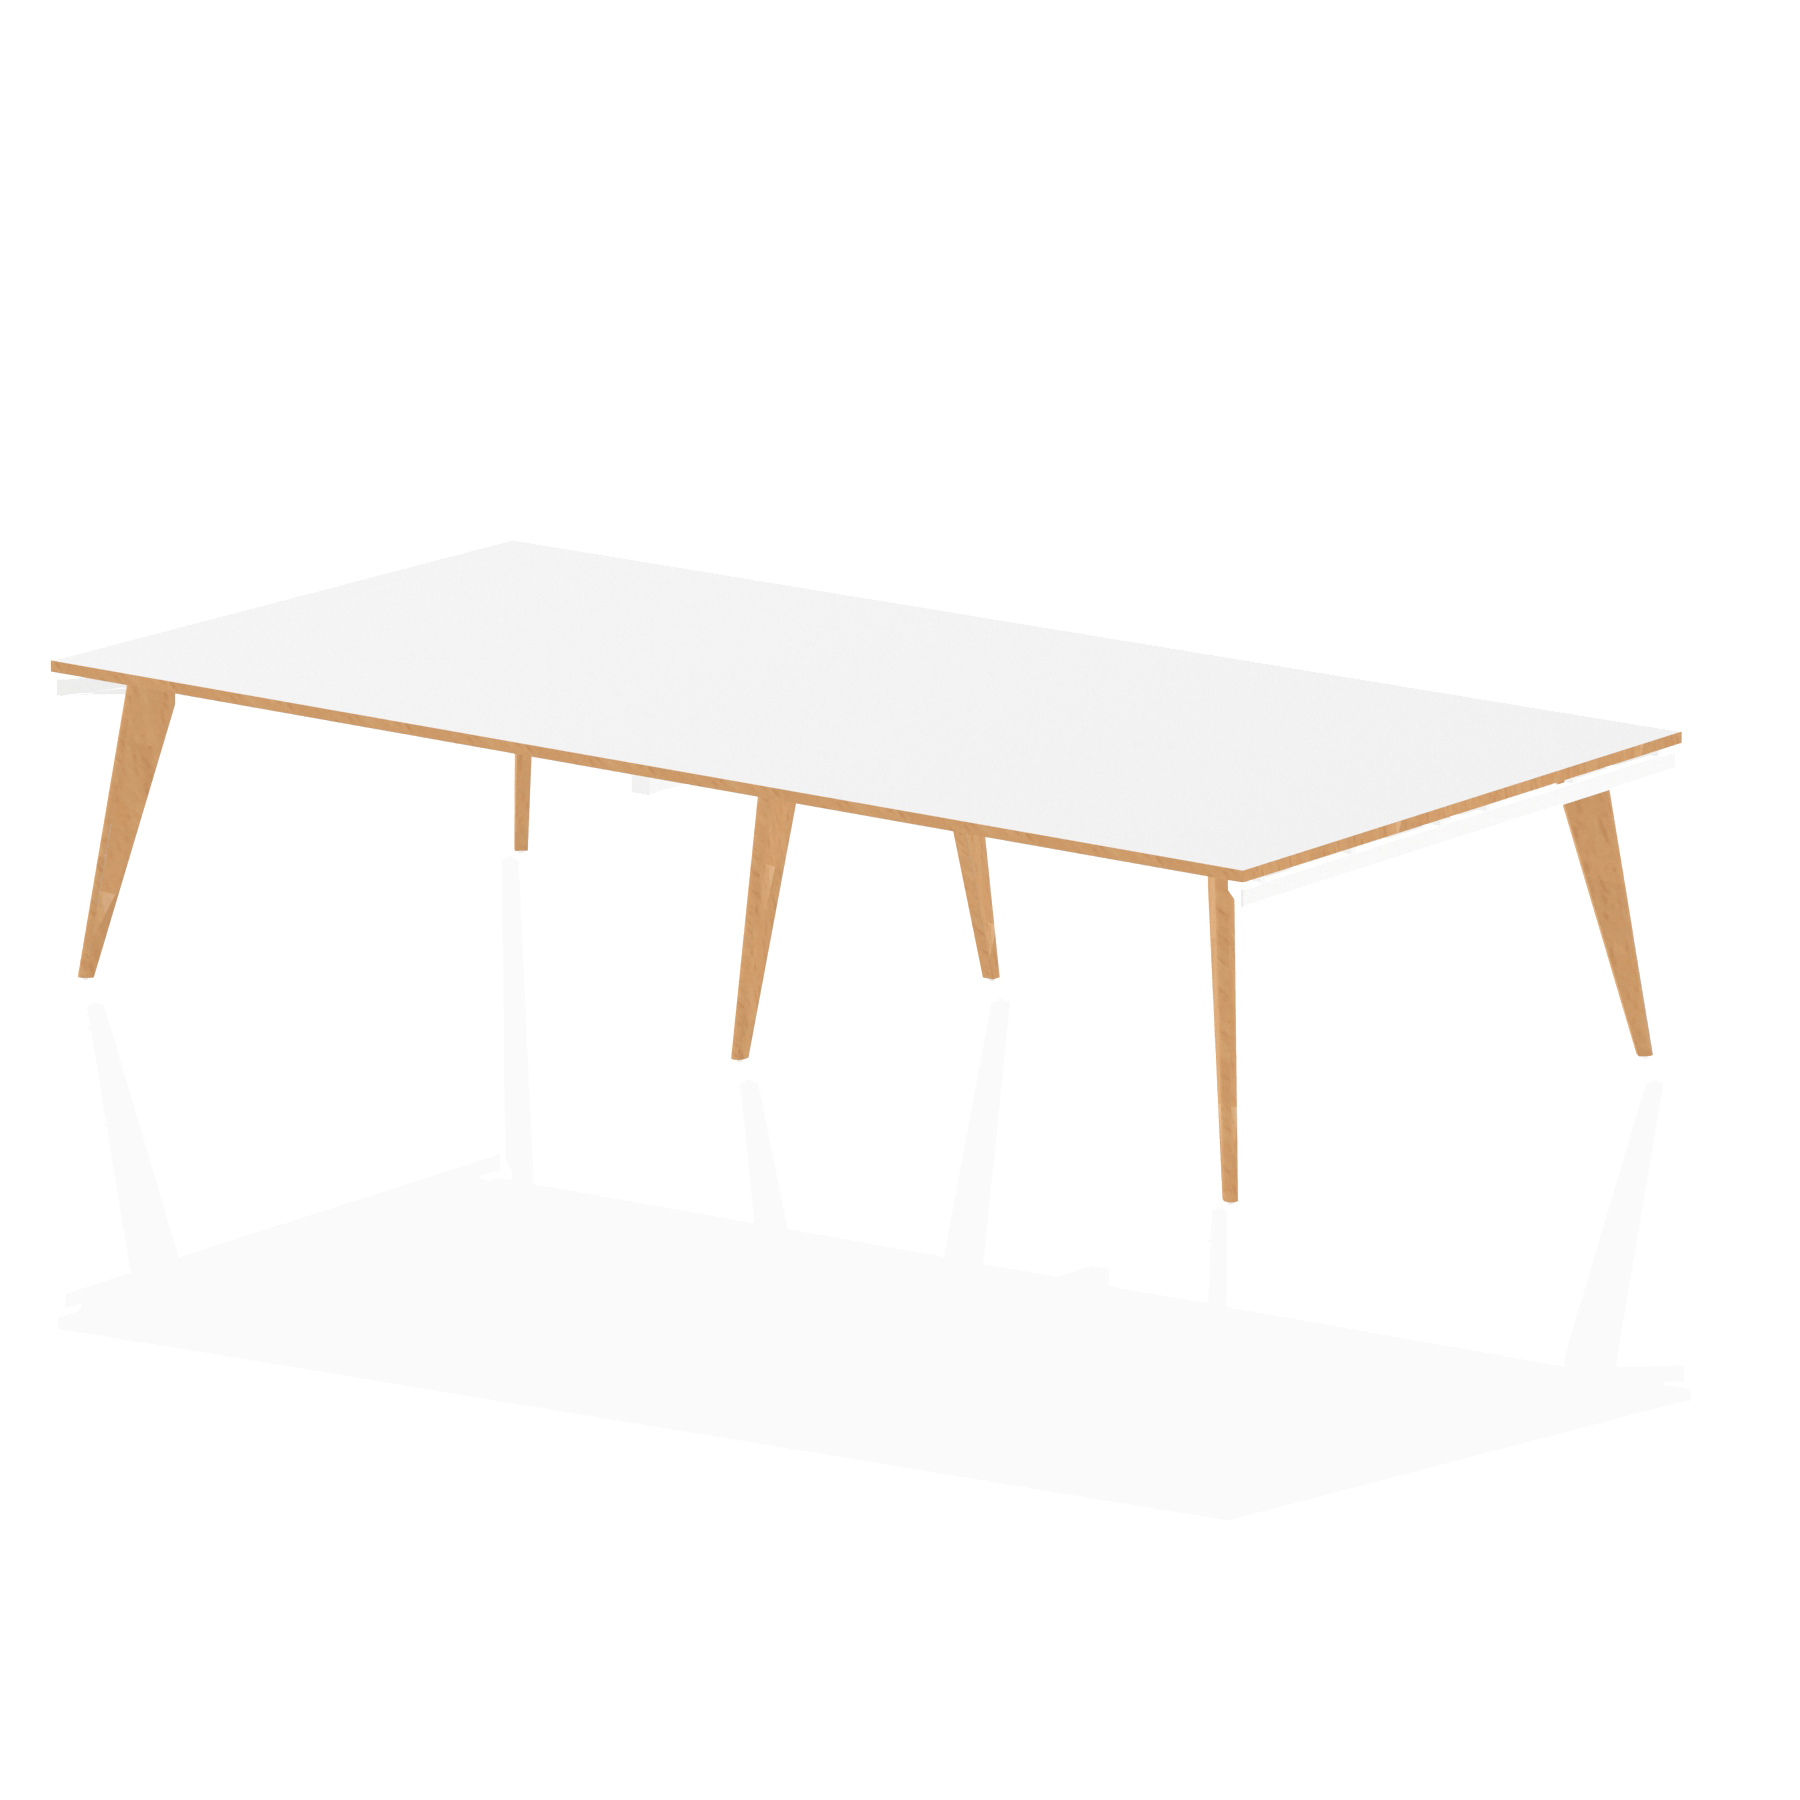 Oslo White Frame Wooden Leg Rectangular Boardroom Table 3200 White With Natural Wood Edge (2 pod)